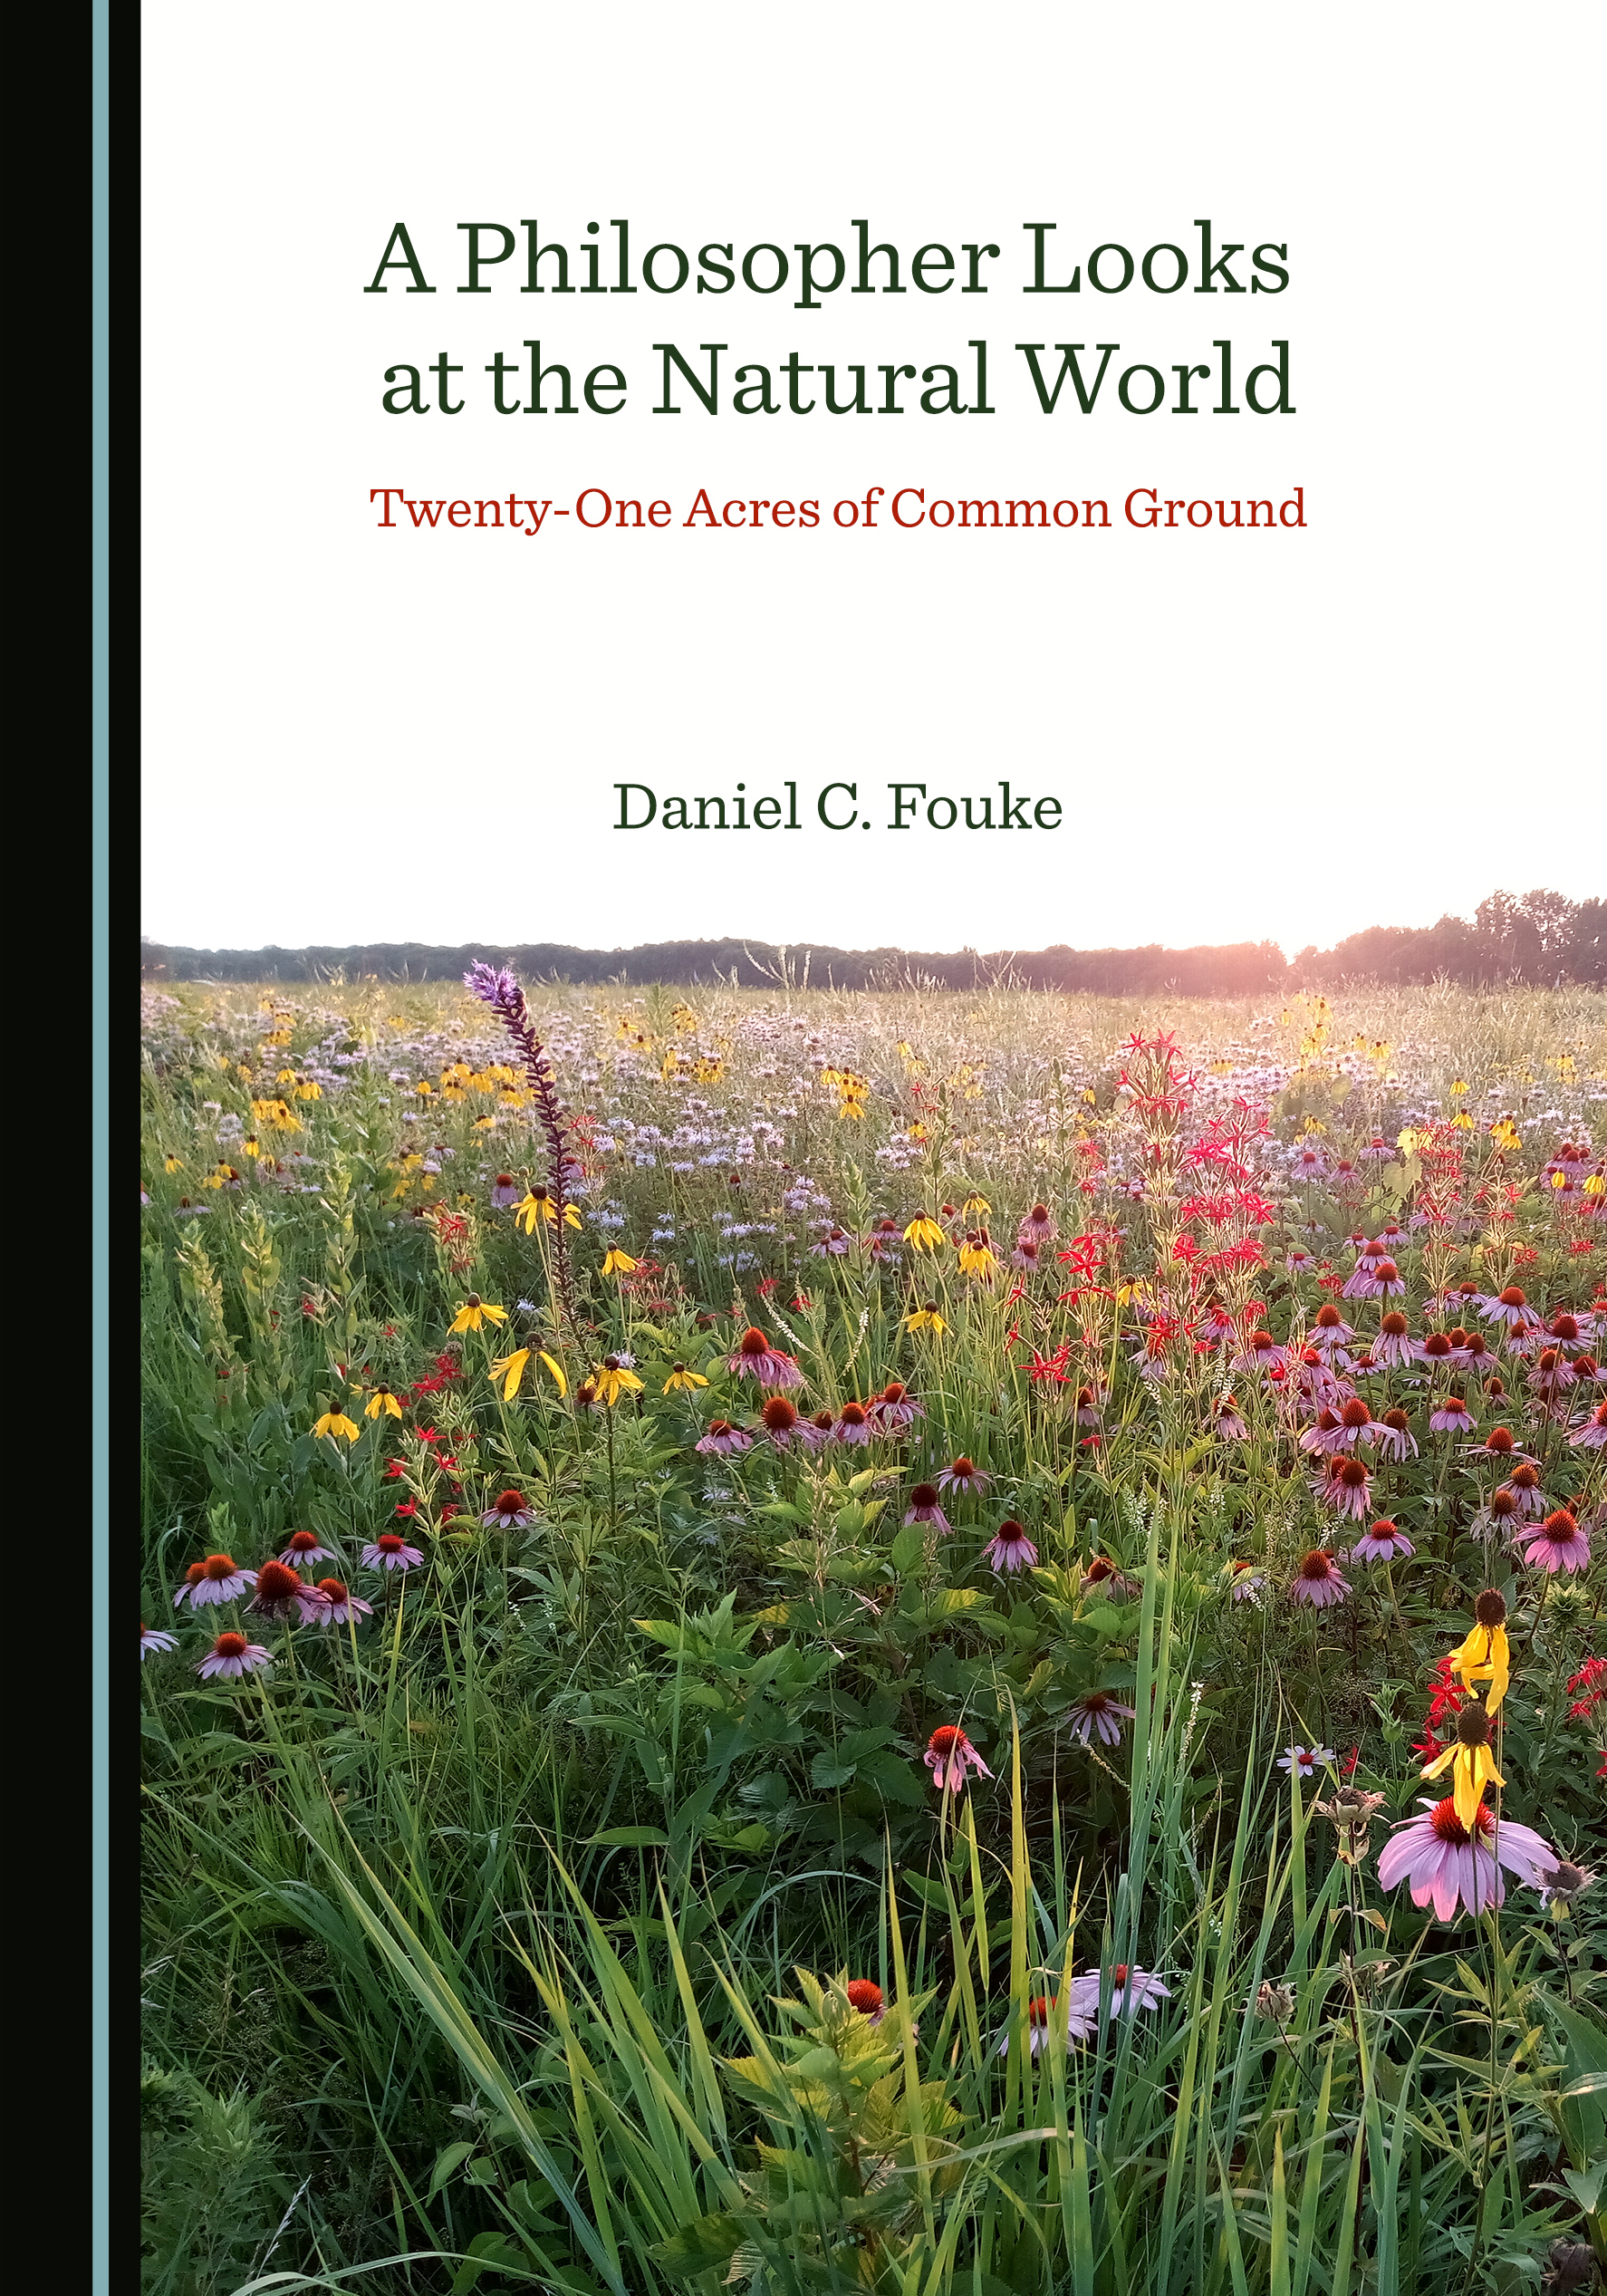 A Philosopher Looks at the Natural World: Twenty-One Acres of Common Ground